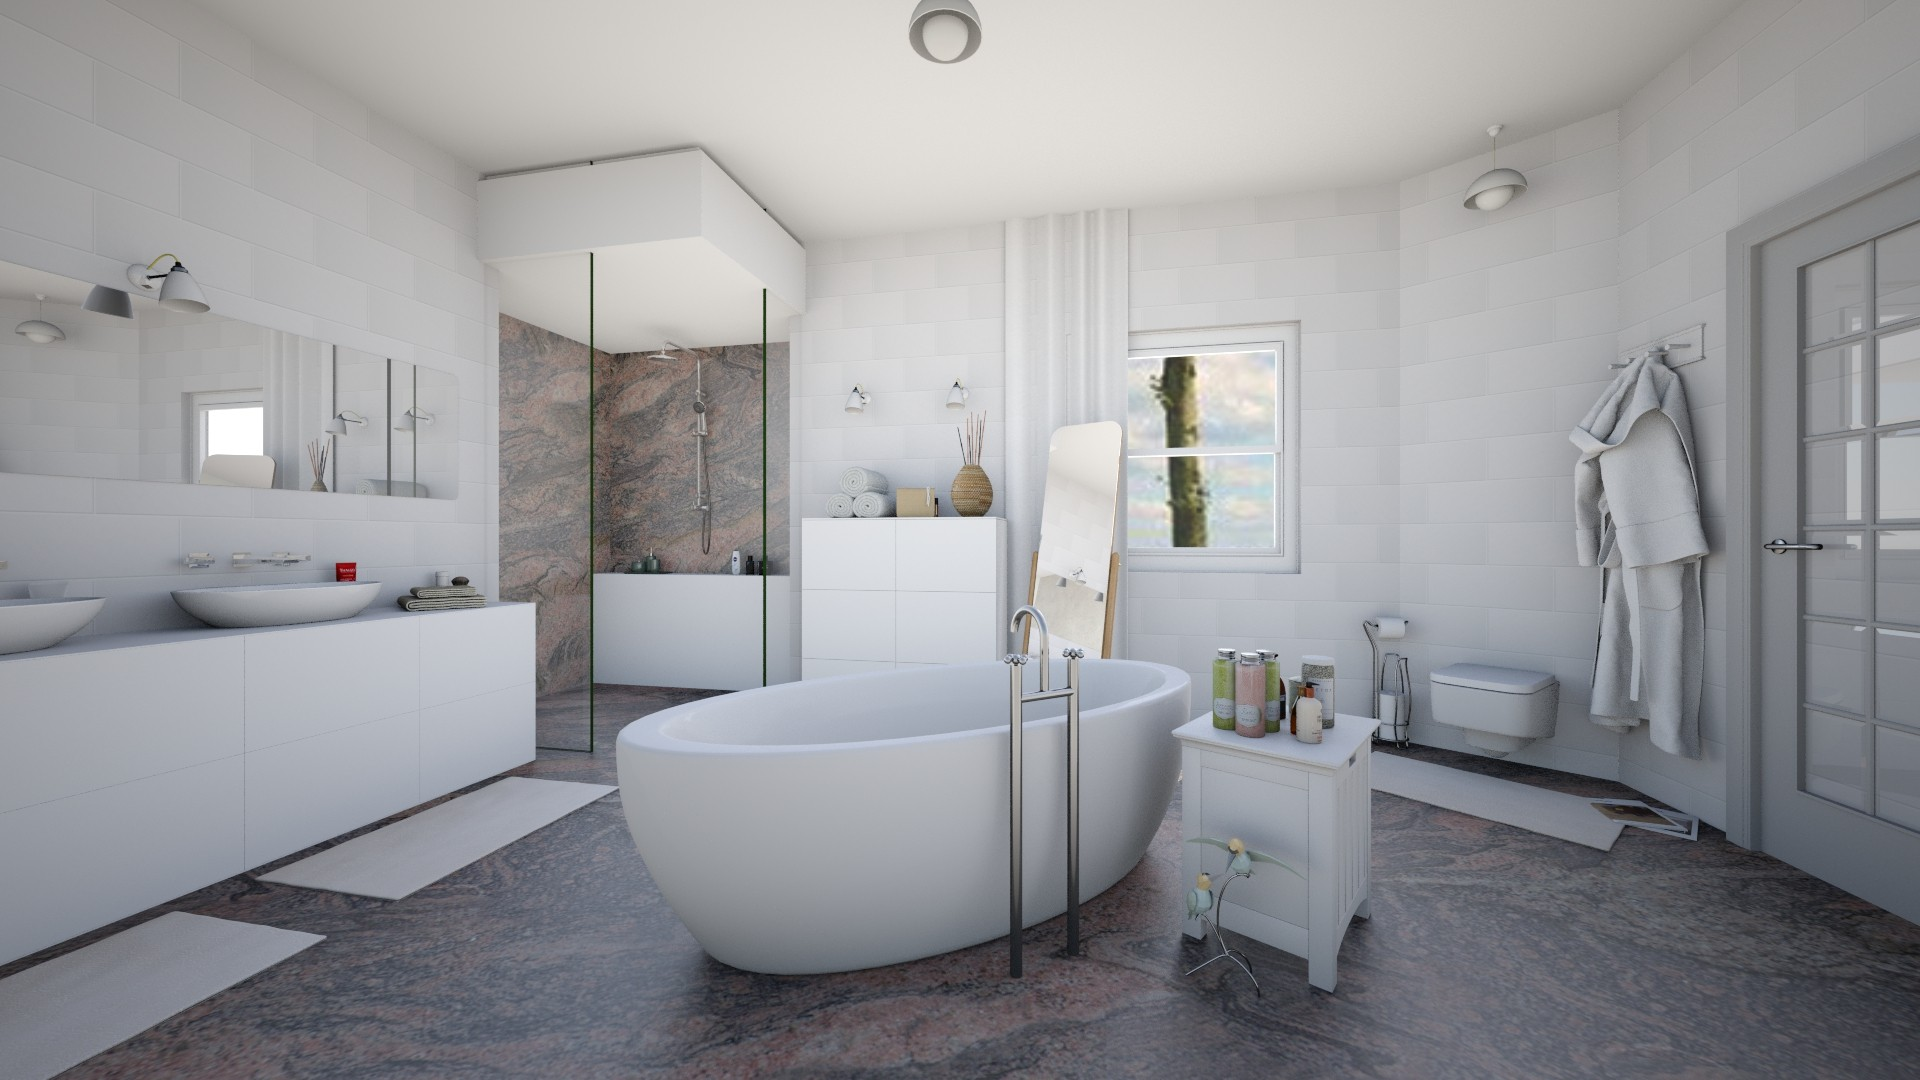 seifira - Modern - Bathroom - by ned31